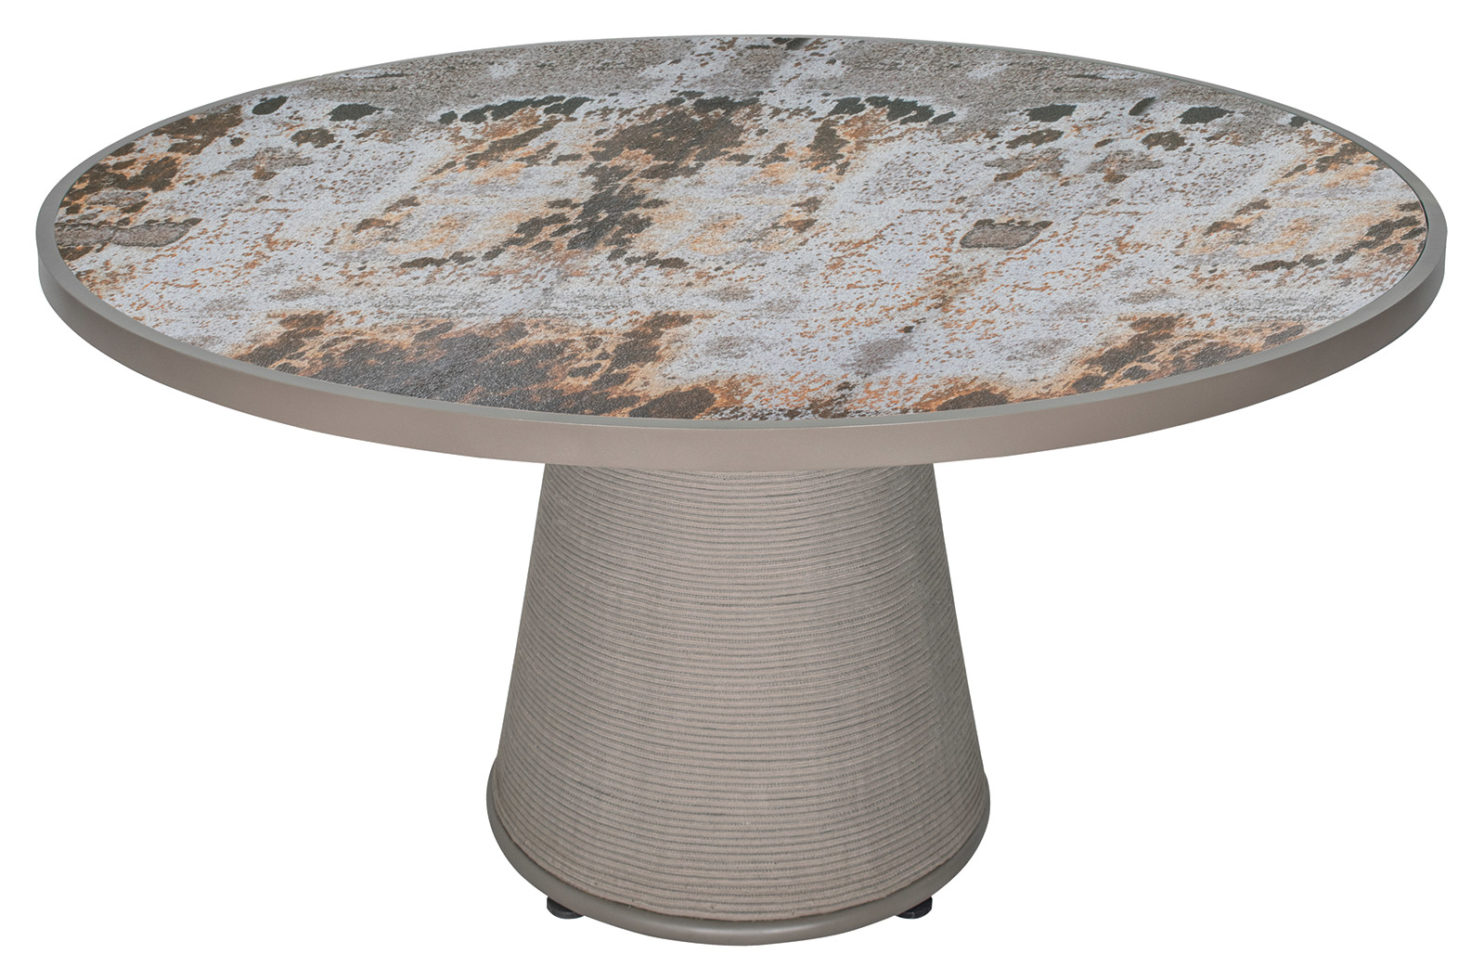 Archipelago alexander table 620FT100P2BBT CWT 1 3Q